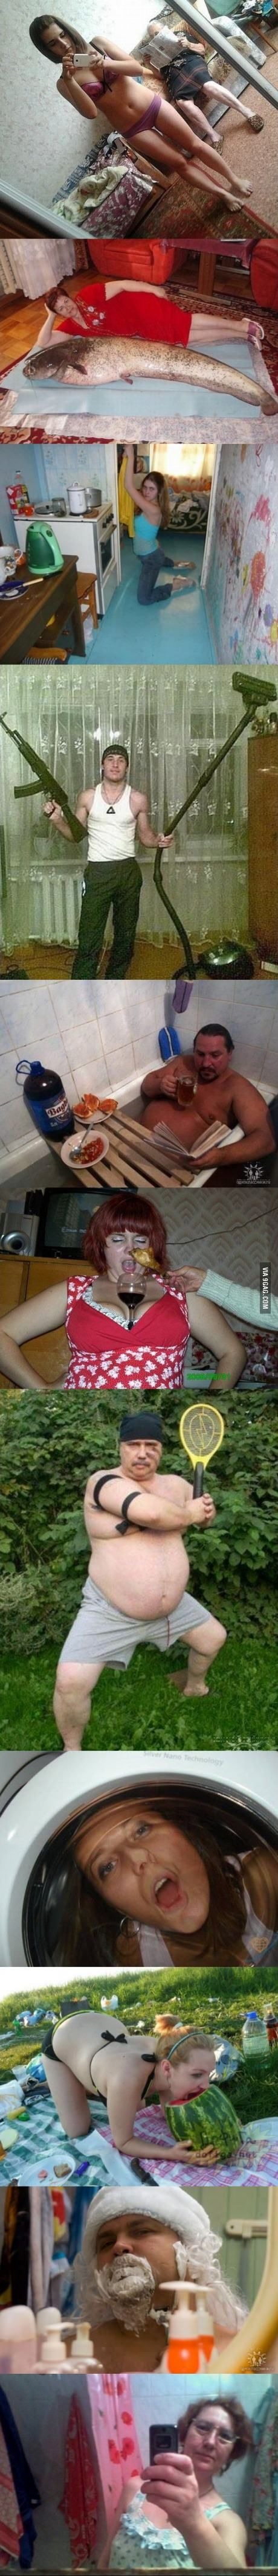 Unexplainable Russian Dating Site Pictures...The guy with the gun and vacuum made me laugh!